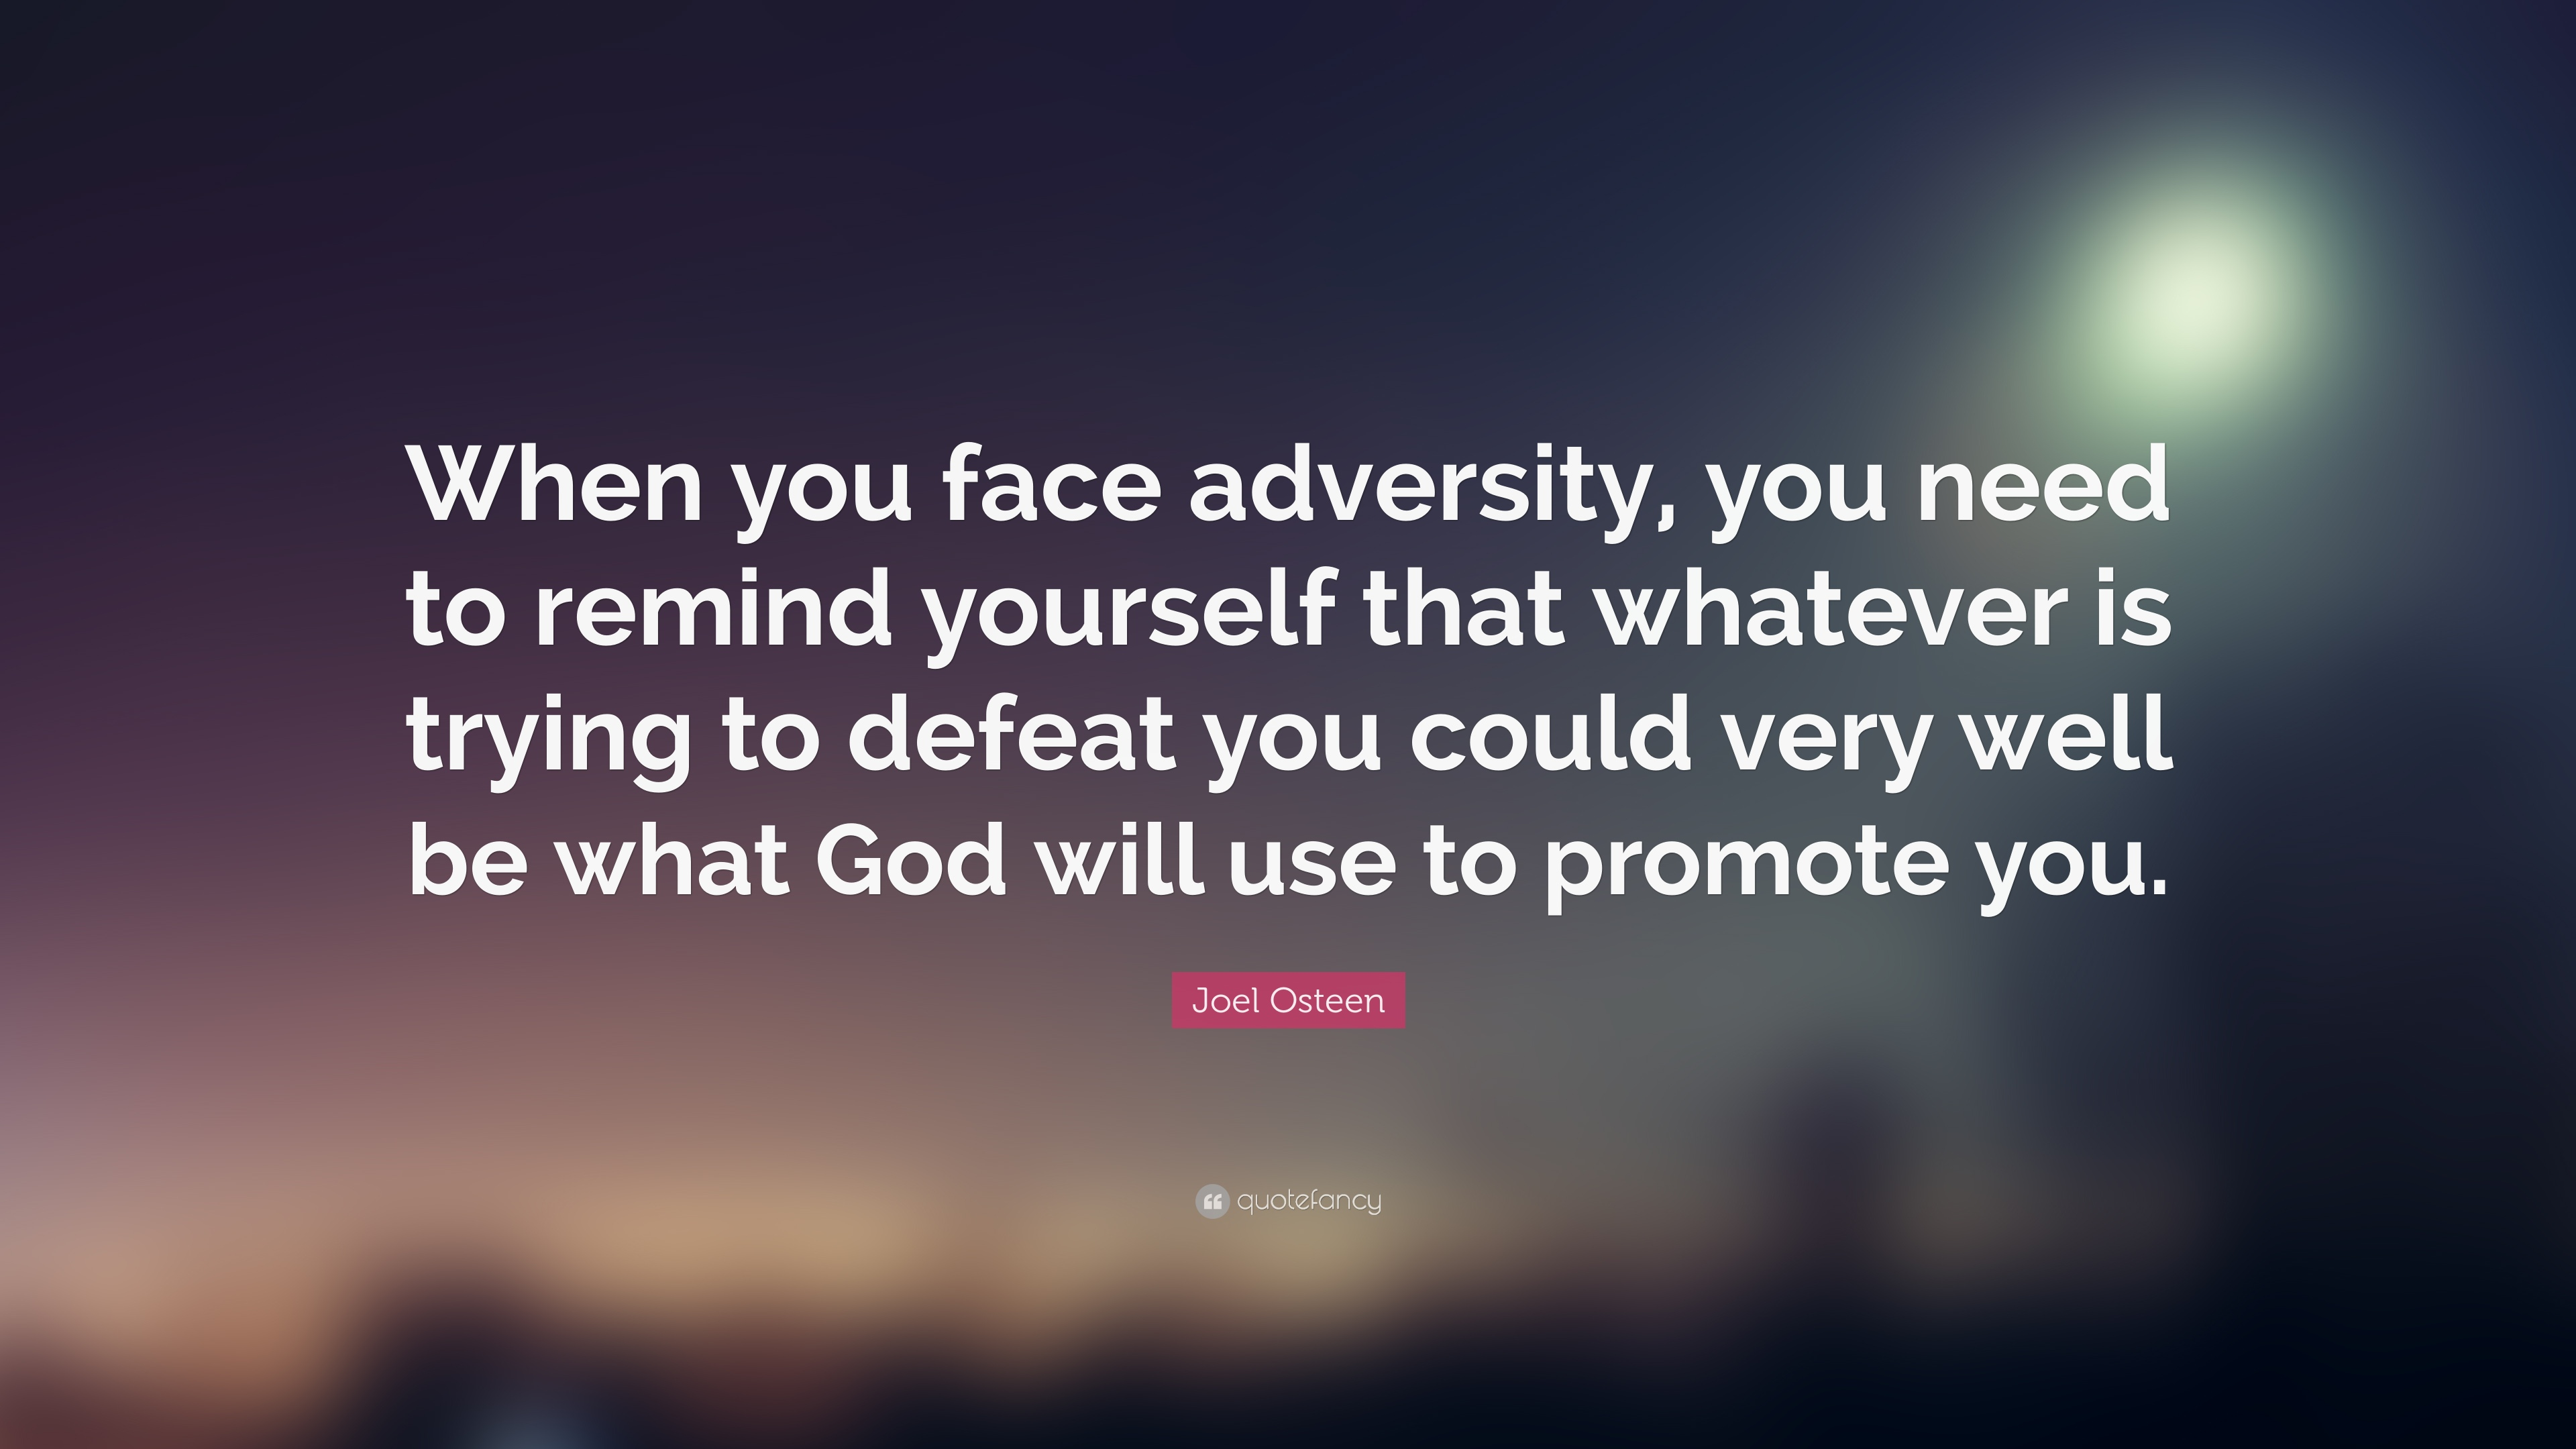 Joel Osteen Quote When You Face Adversity You Need To Remind